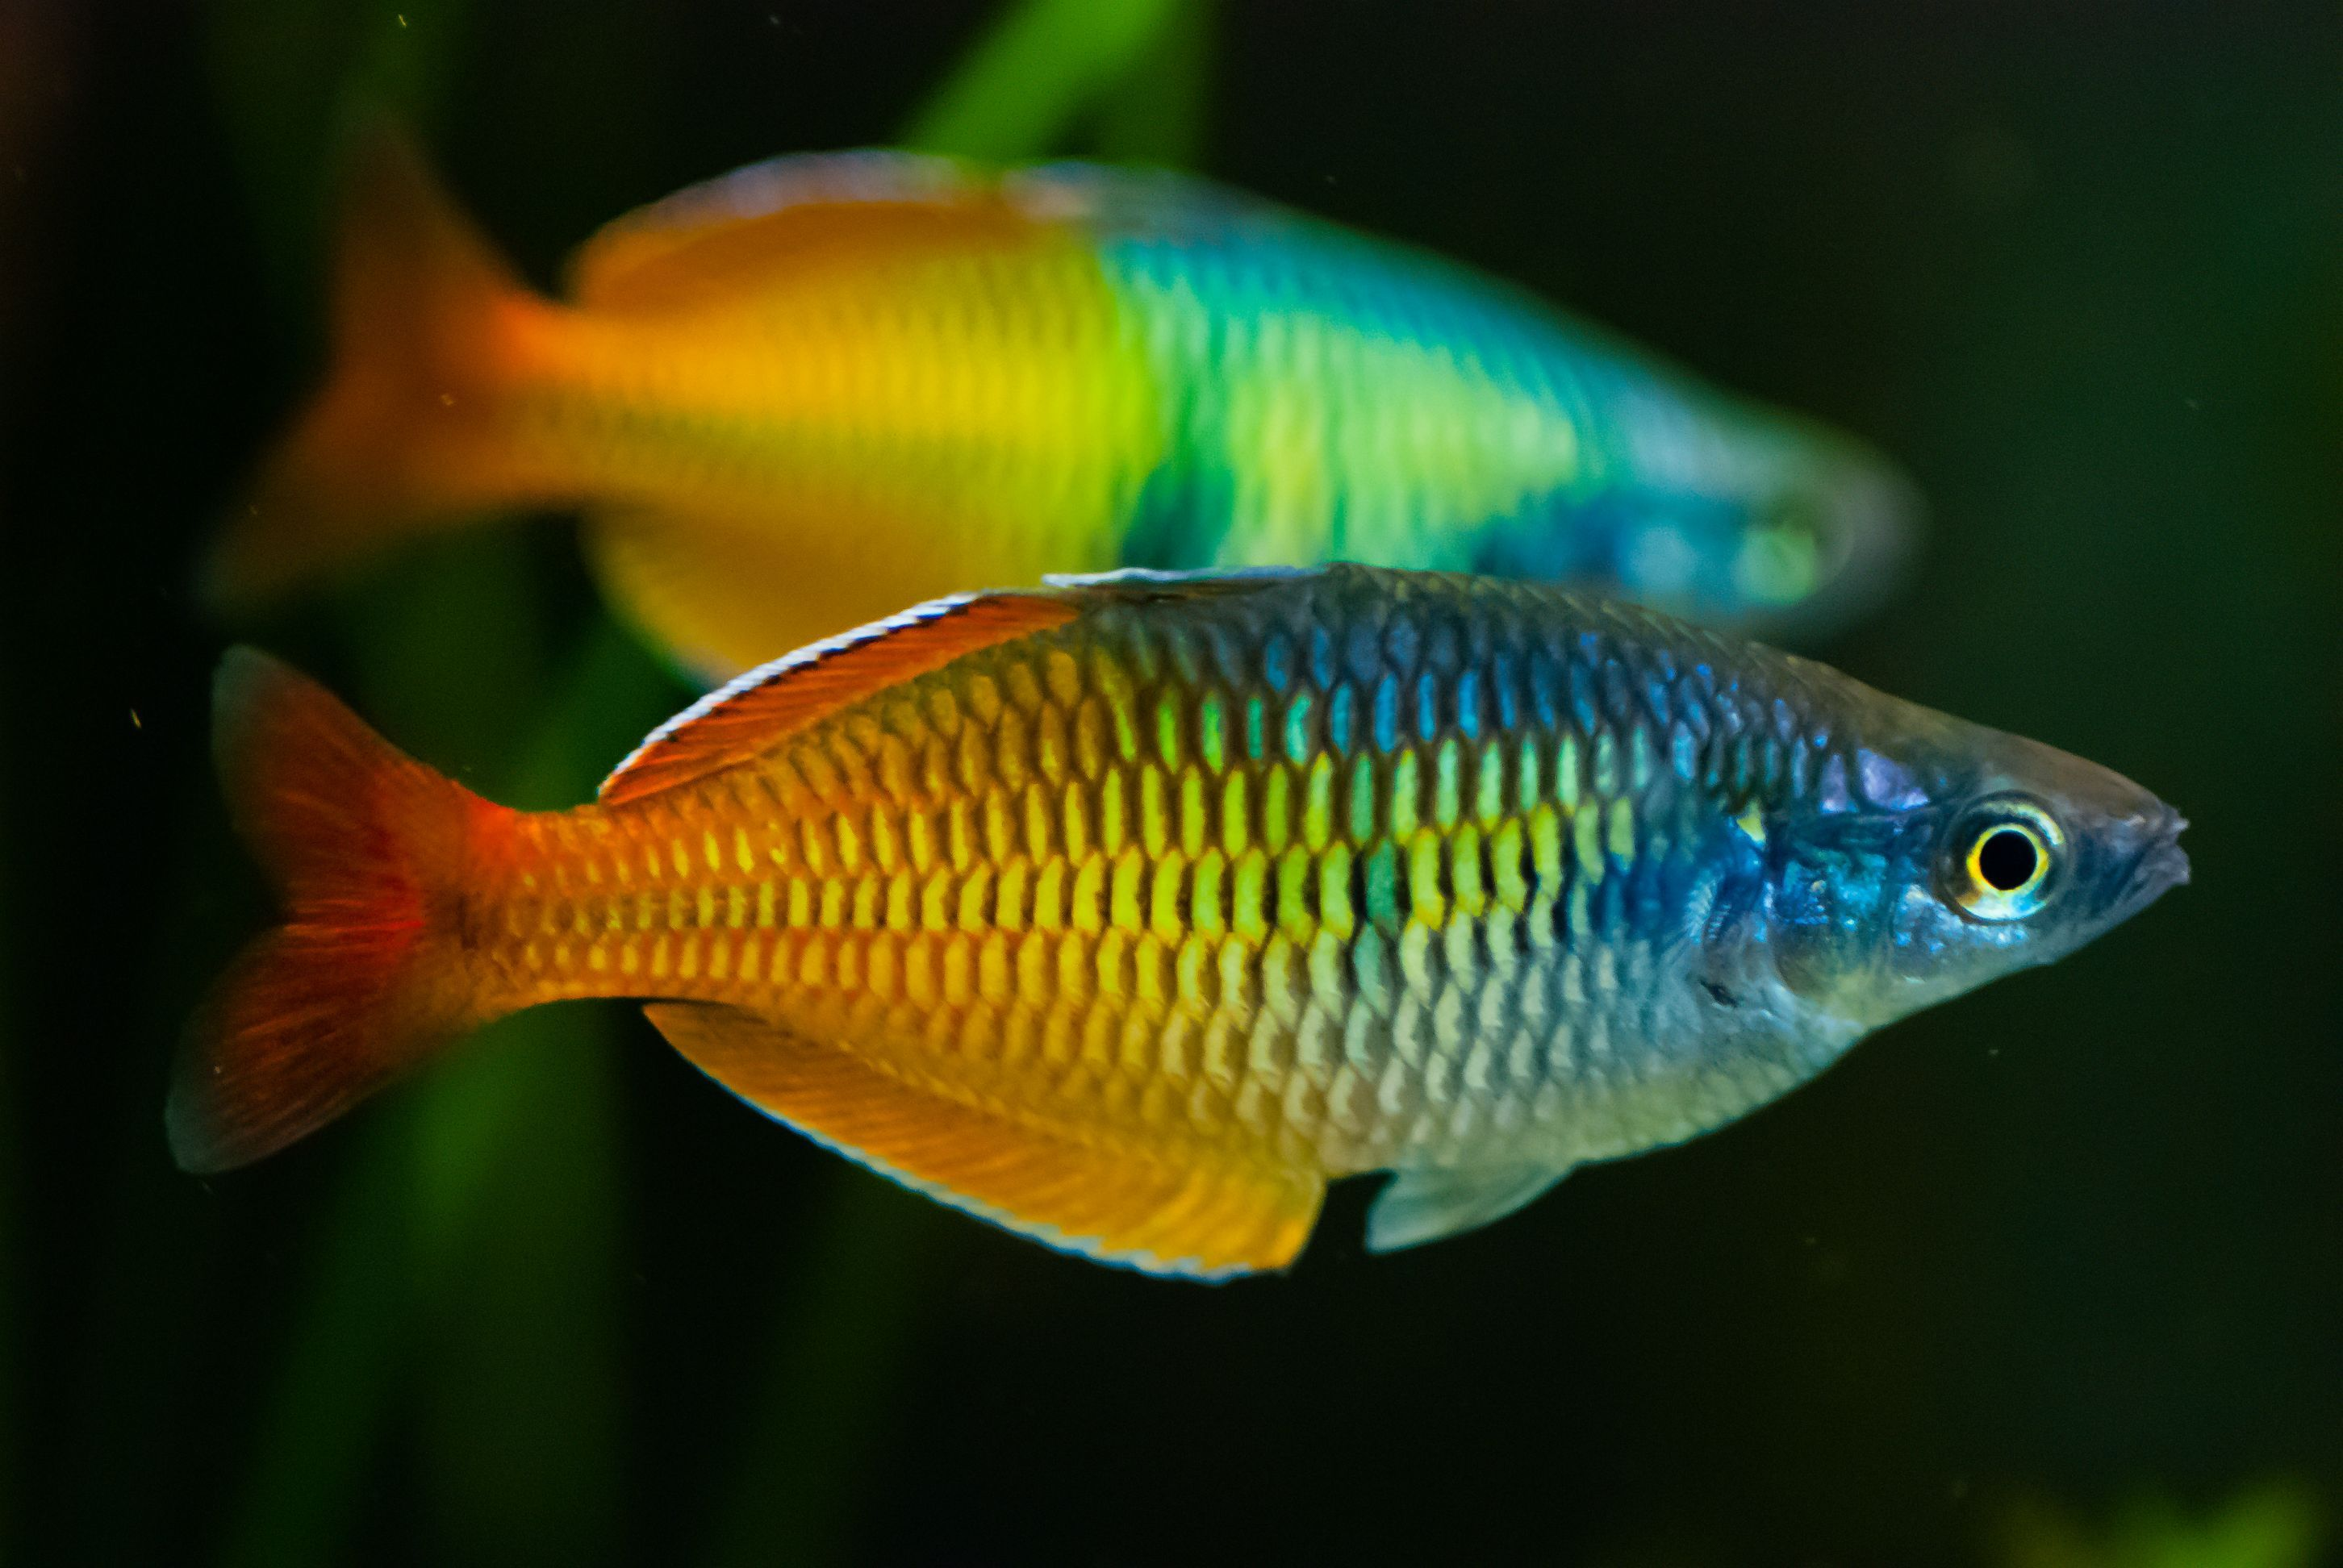 Call A Smart Animal Possibly Pets Or Dolphins Or Chimpanzees Entered Your Mind But Why Not Fish Salmon Or Moray Eels Rainbow Fish Aquarium Fish Pet Fish